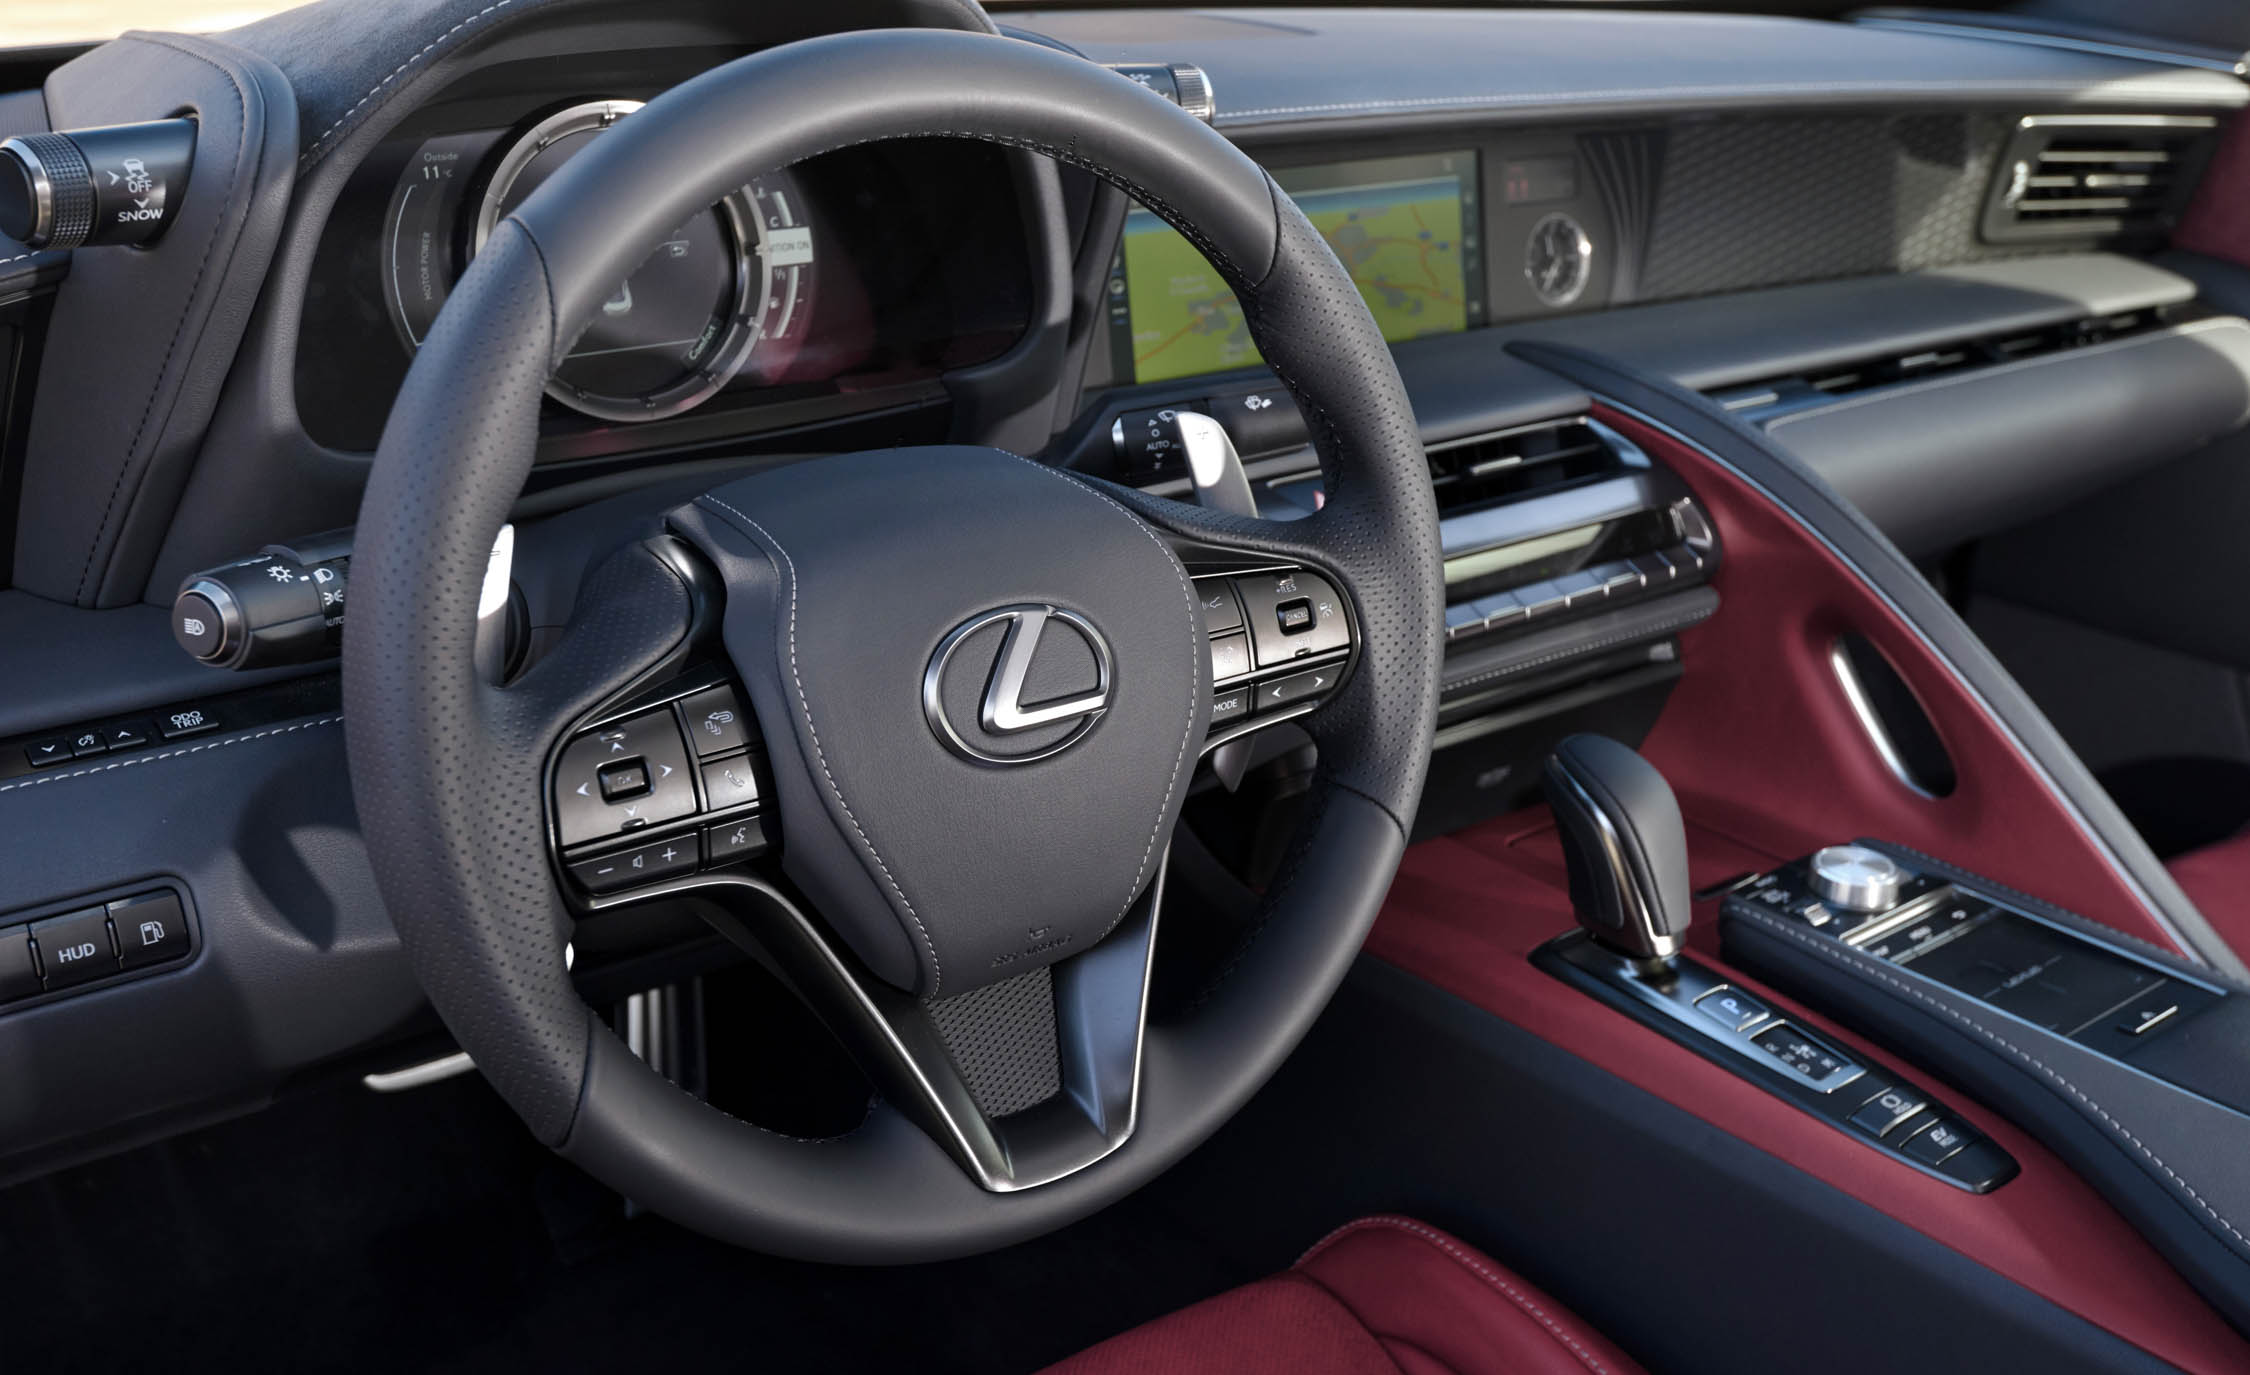 2018 Lexus Lc 500h Interior View Steering Wheel (View 35 of 84)